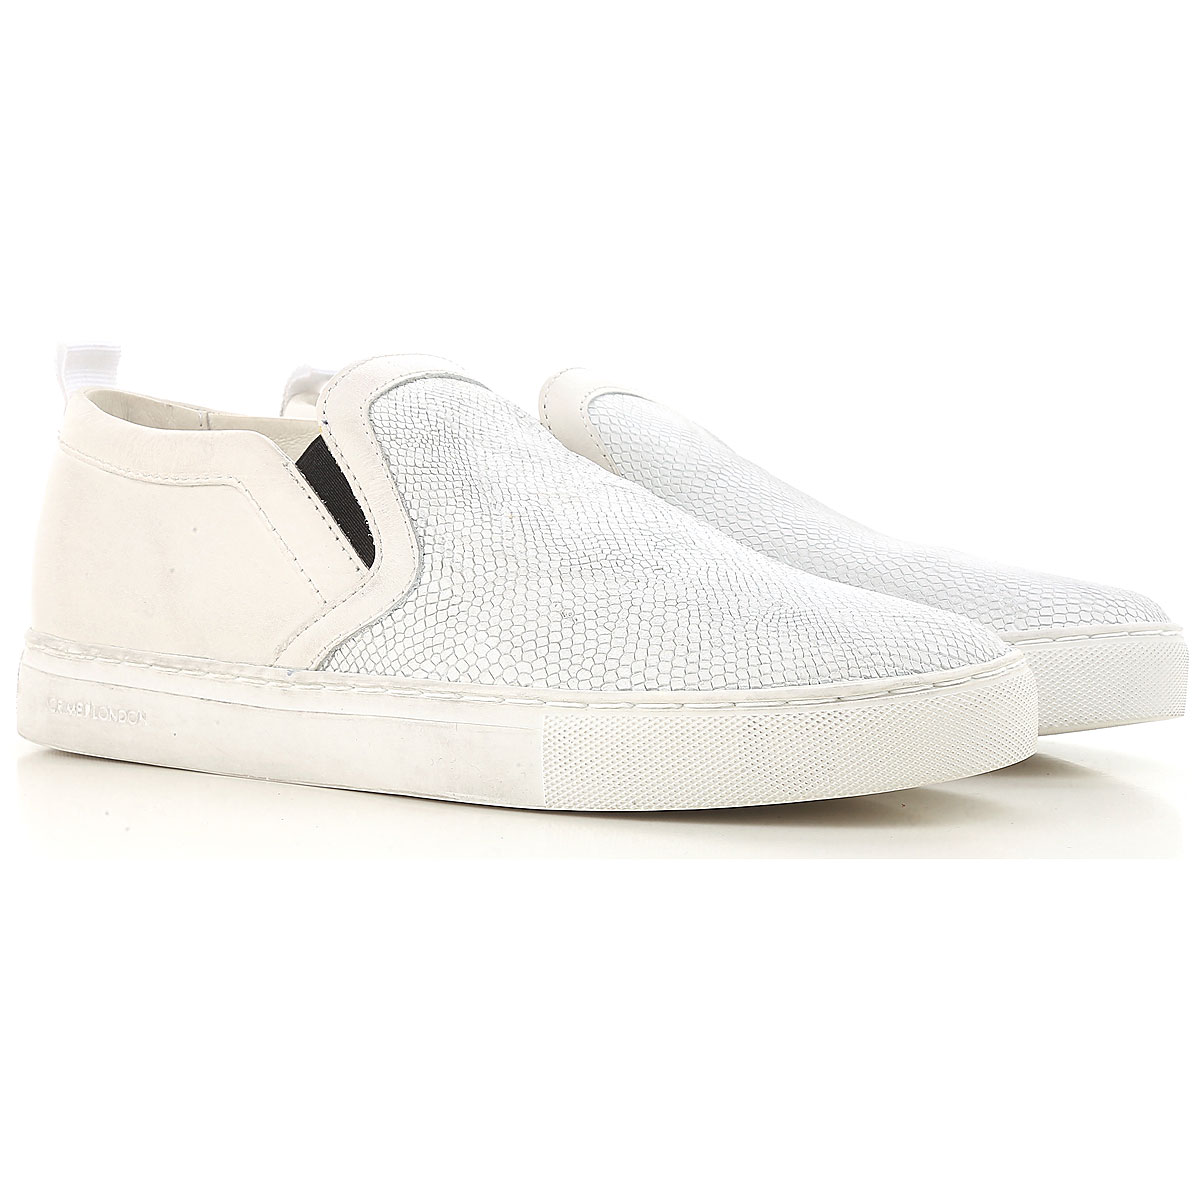 Image of Crime Slip on Sneakers for Men On Sale in Outlet, White, Leather, 2017, 10.5 7.5 8